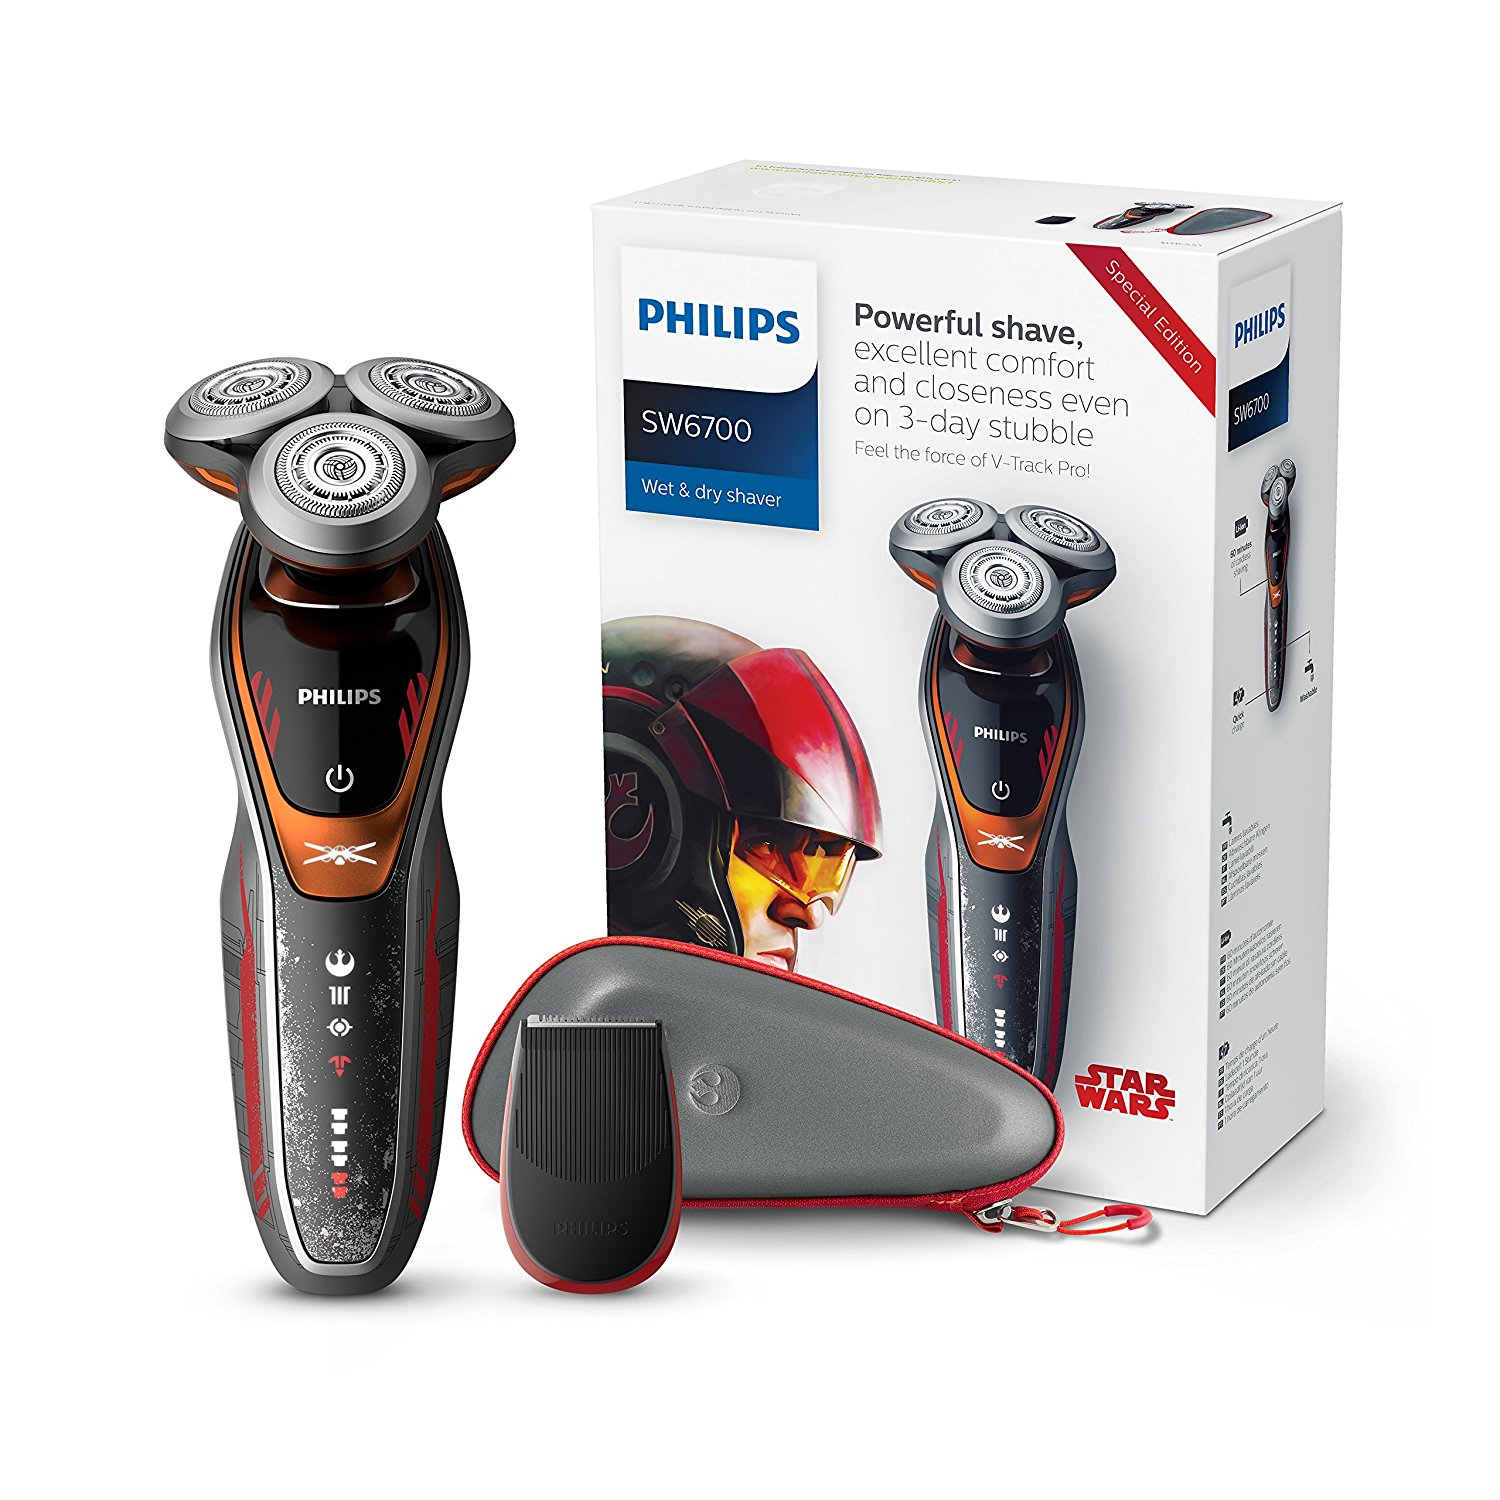 Philips Rasierer Star Wars Edition amazon